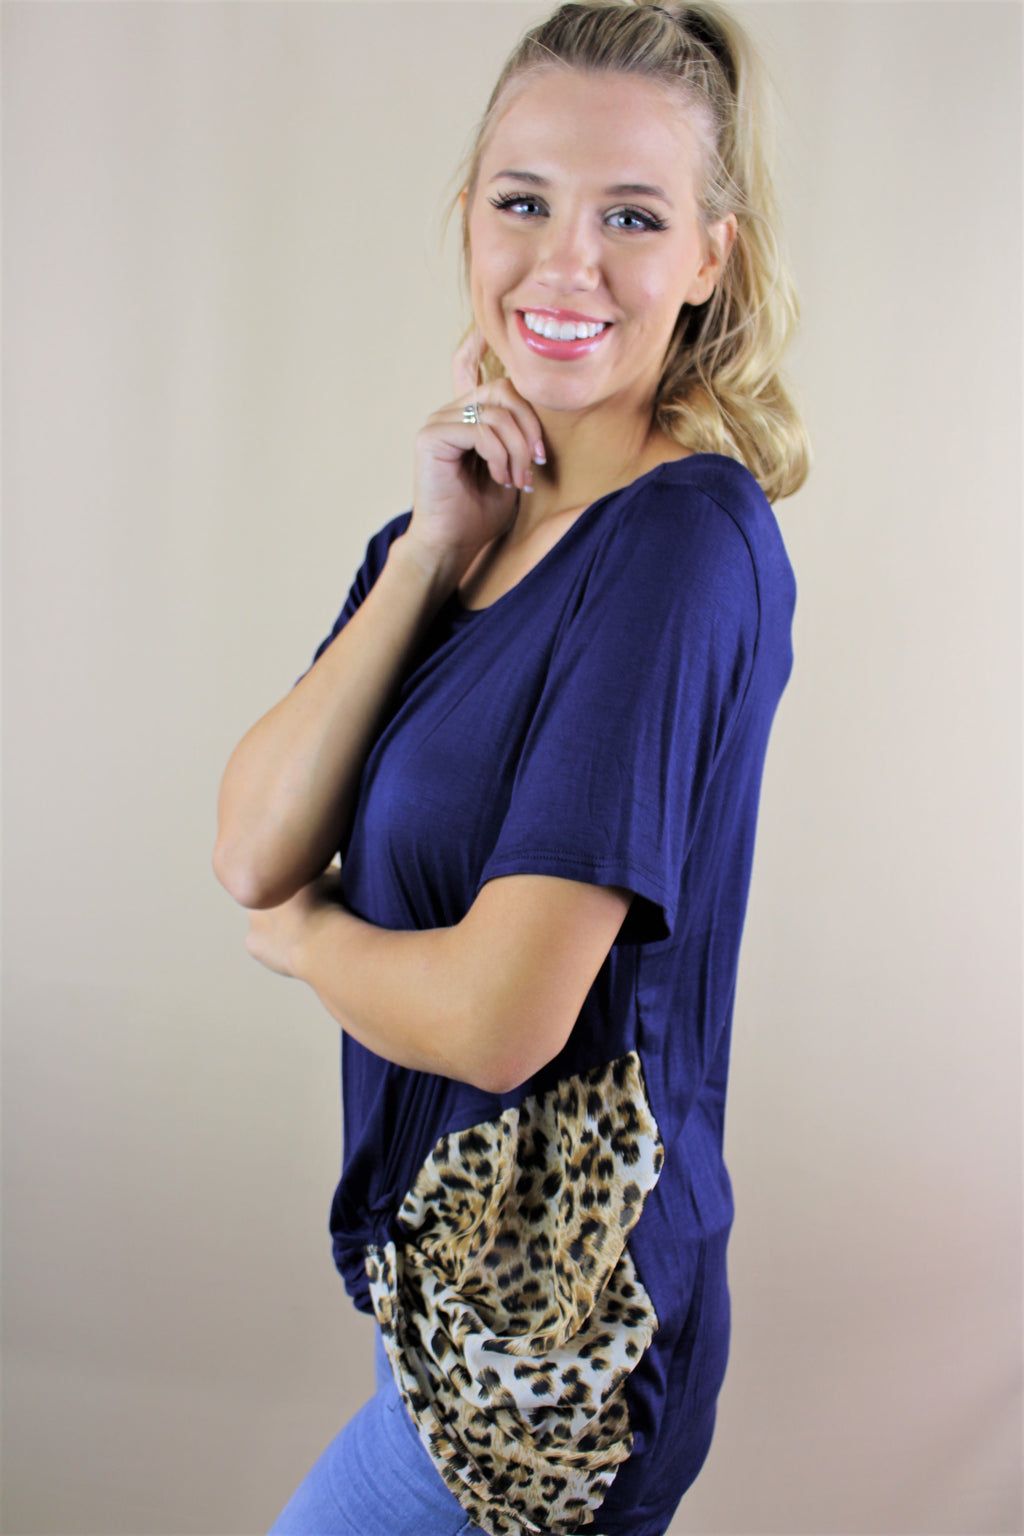 Women's Short Sleeve Top with Animal Print Design